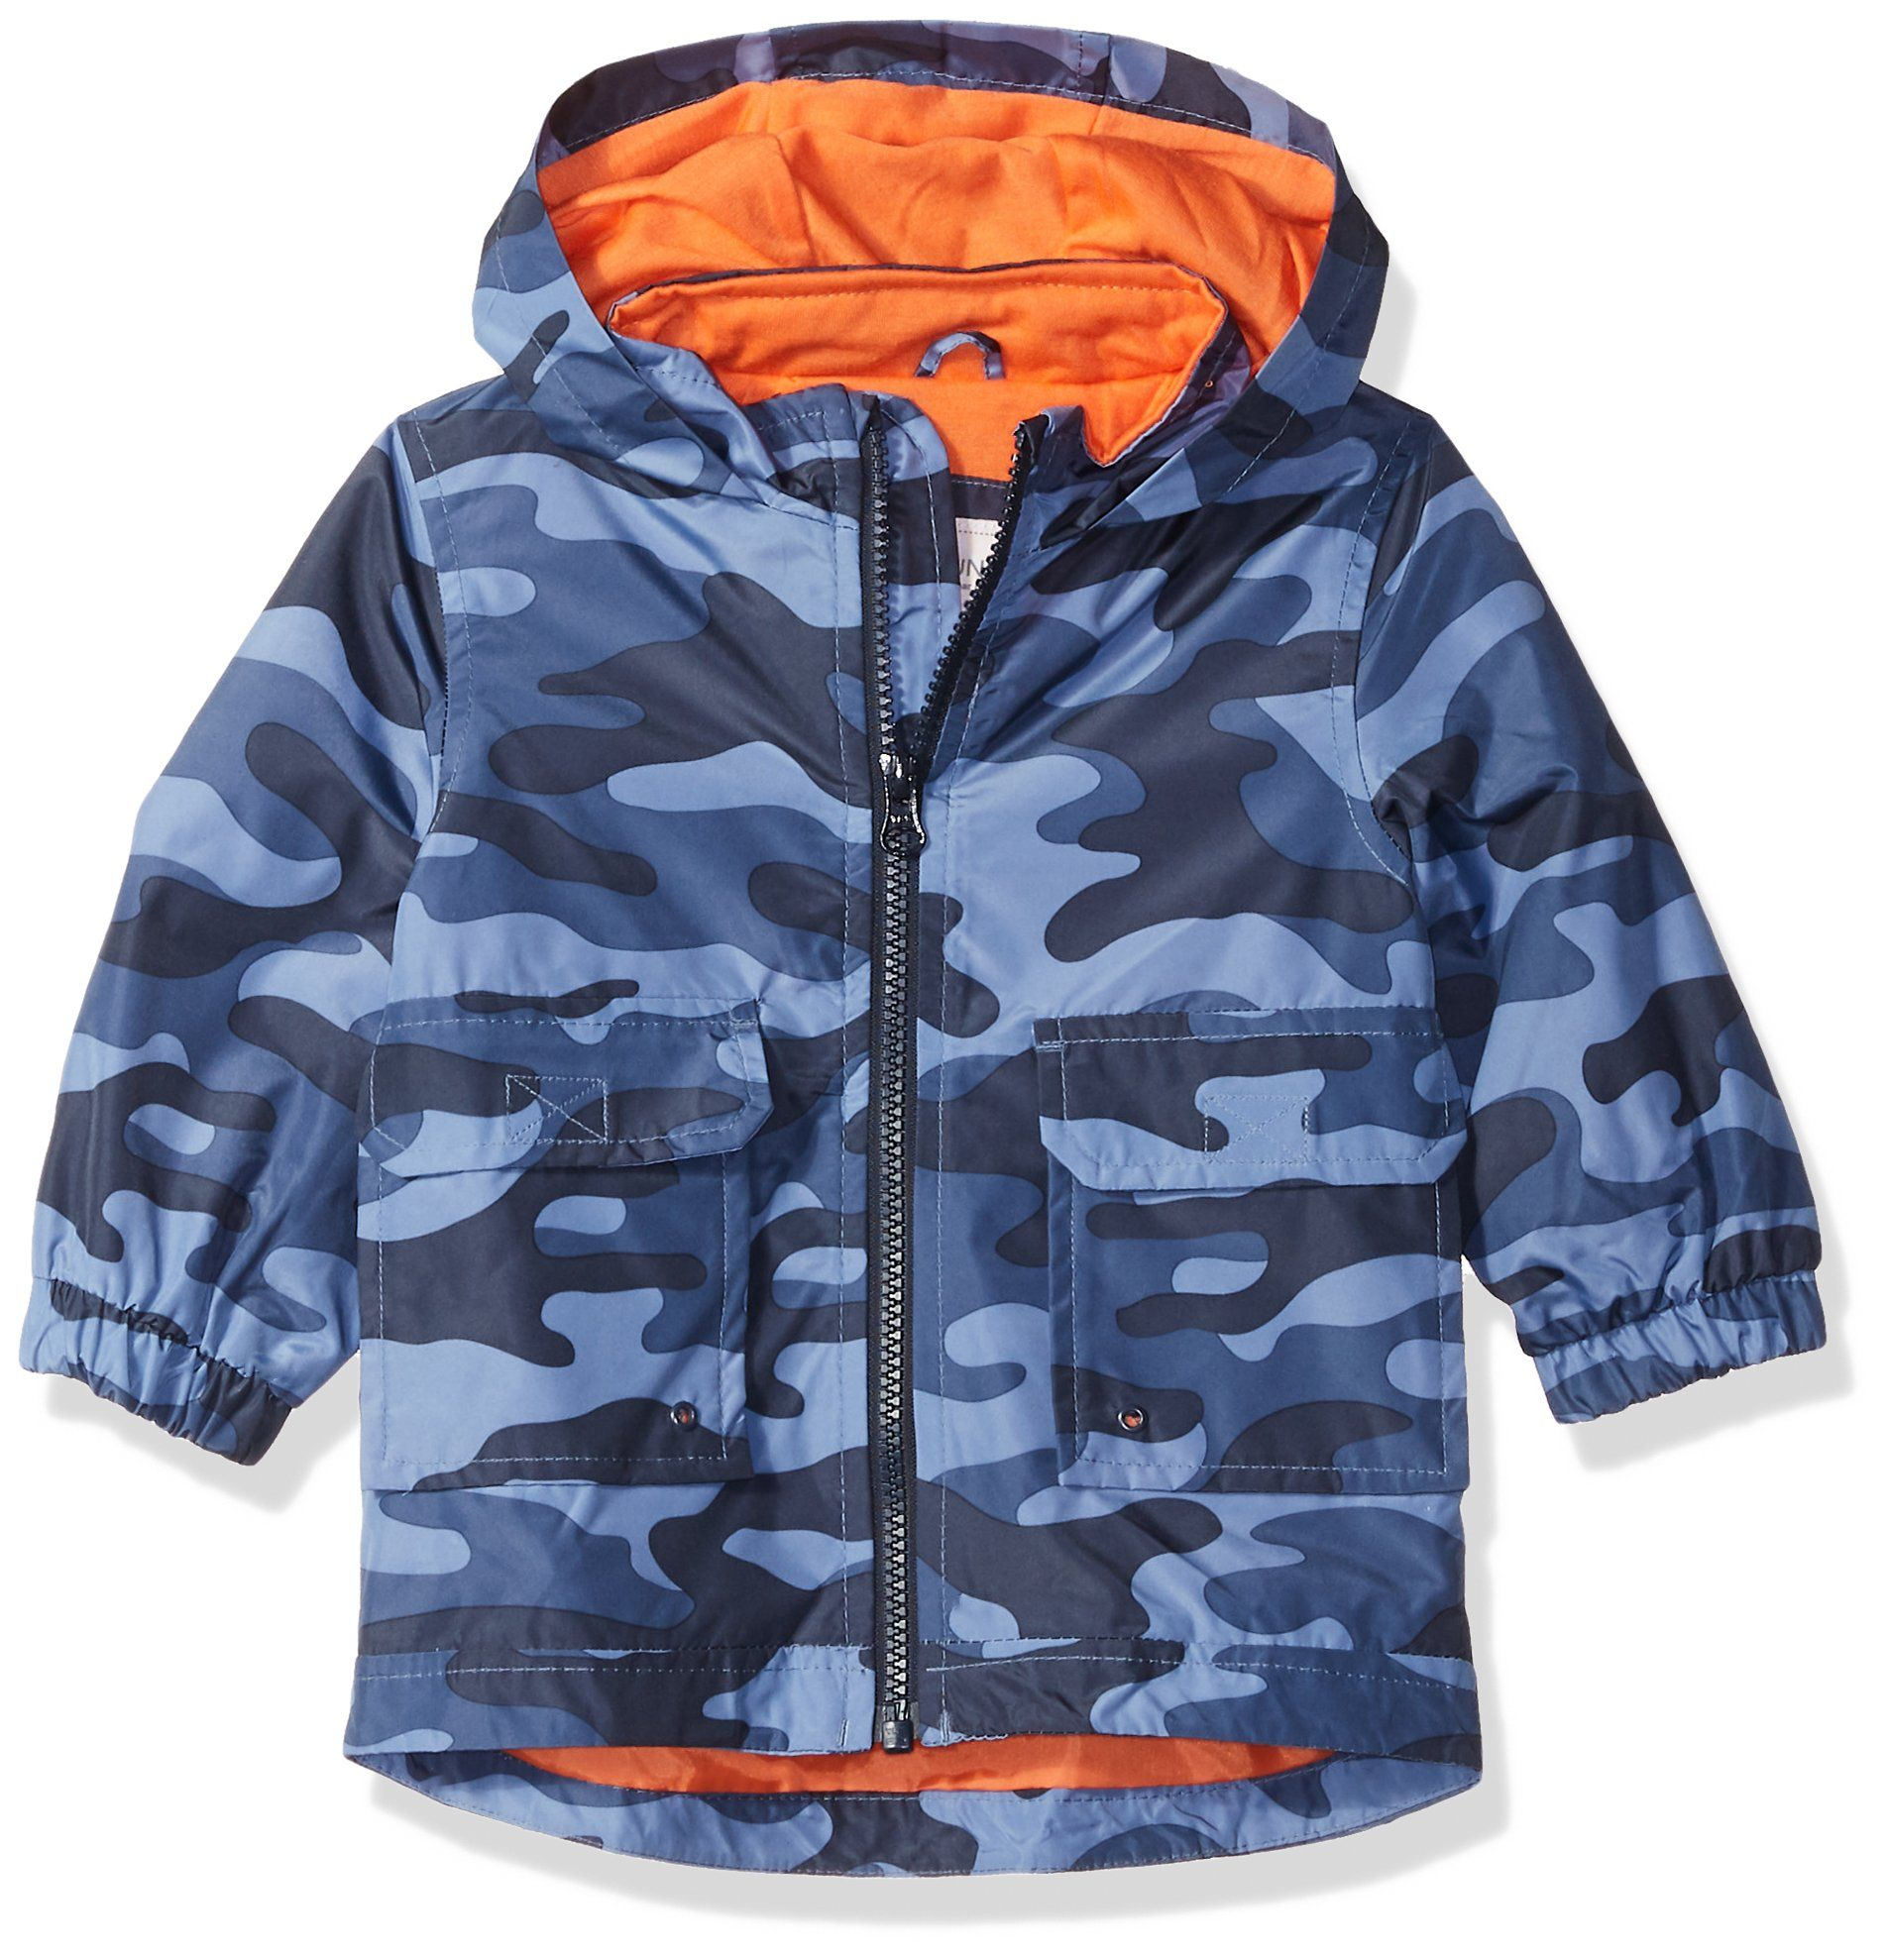 66e0f4304c32 Carters Baby Boys His Favorite Rainslicker Rain Jacket Blue camo 12M ...